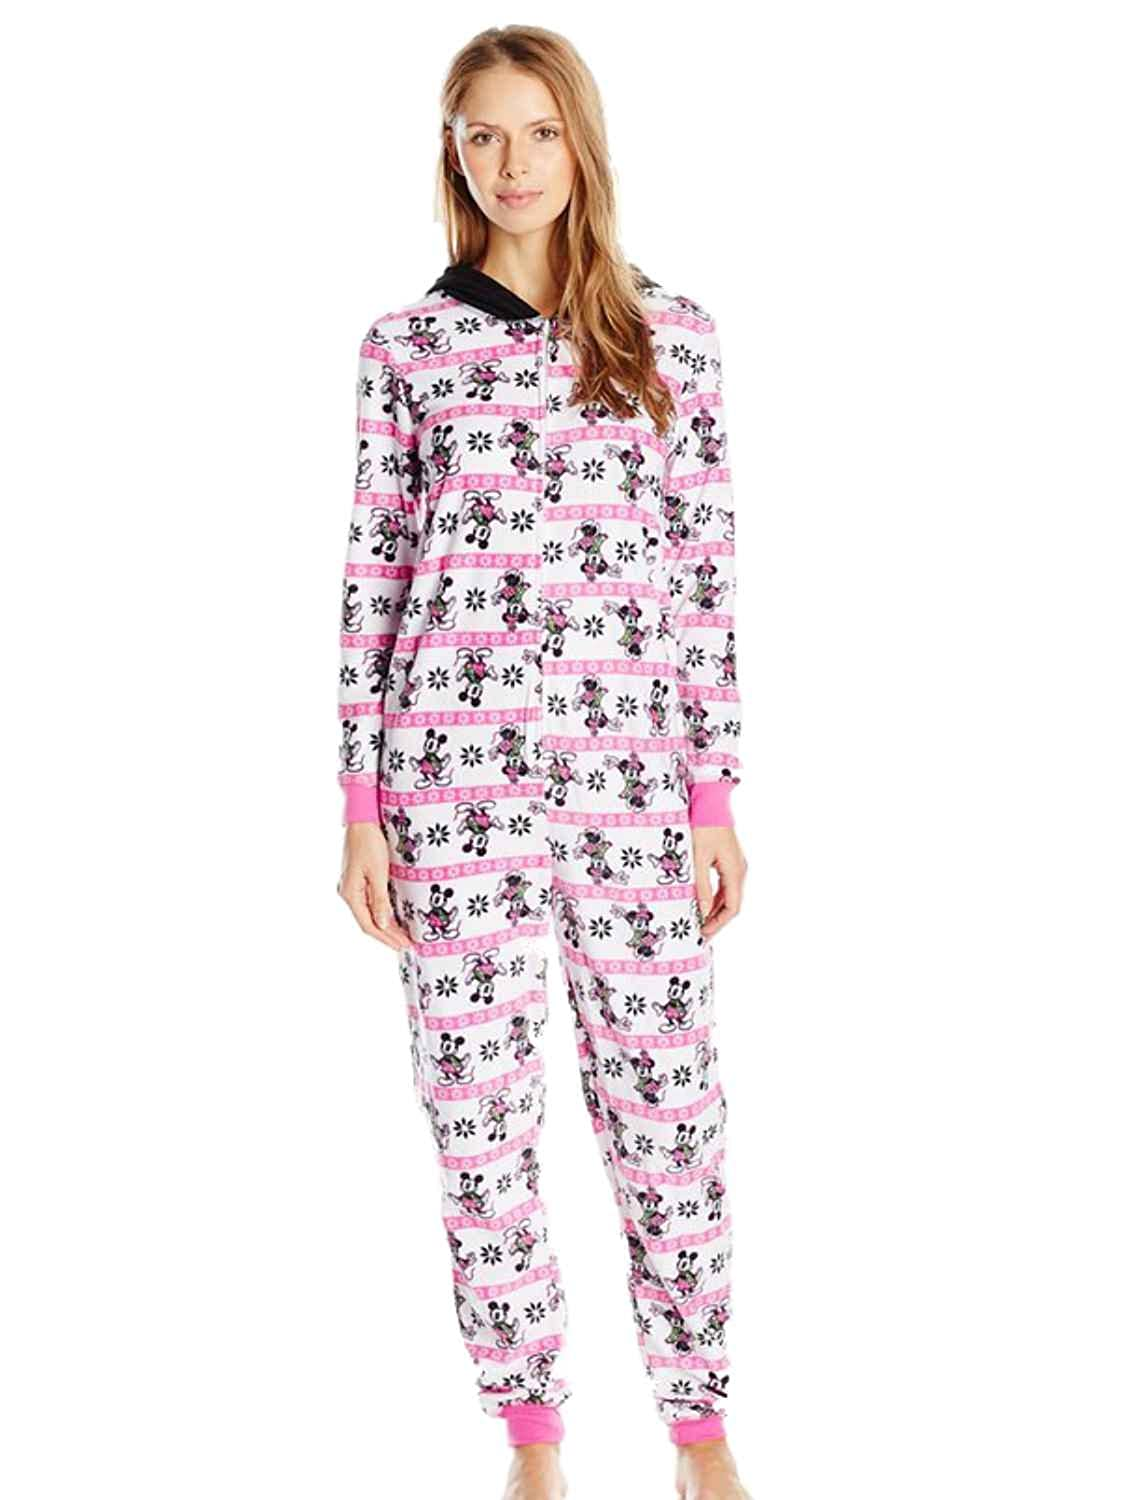 78761ad8e6 Disney Womens Pink Fleece Mickey Minnie Mouse Hooded Union Suit Sleeper  Pajama at Amazon Women s Clothing store